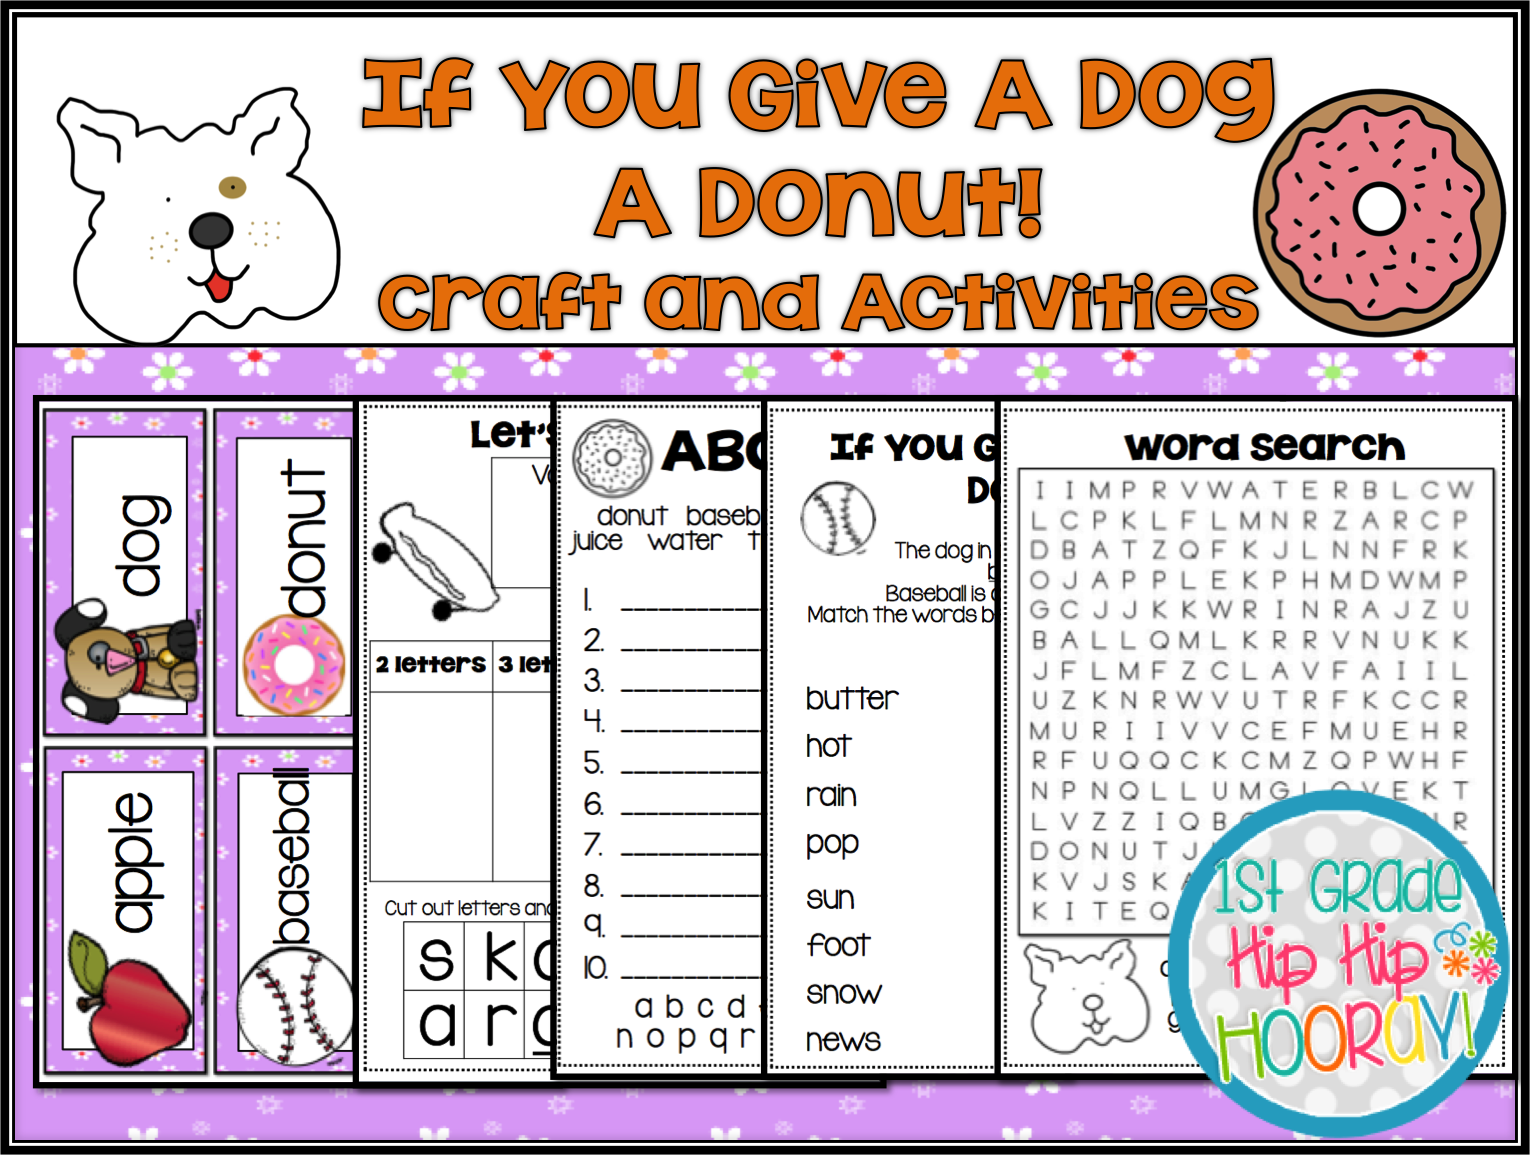 1st Grade Hip Hip Hooray If You Give A Dog A Donut